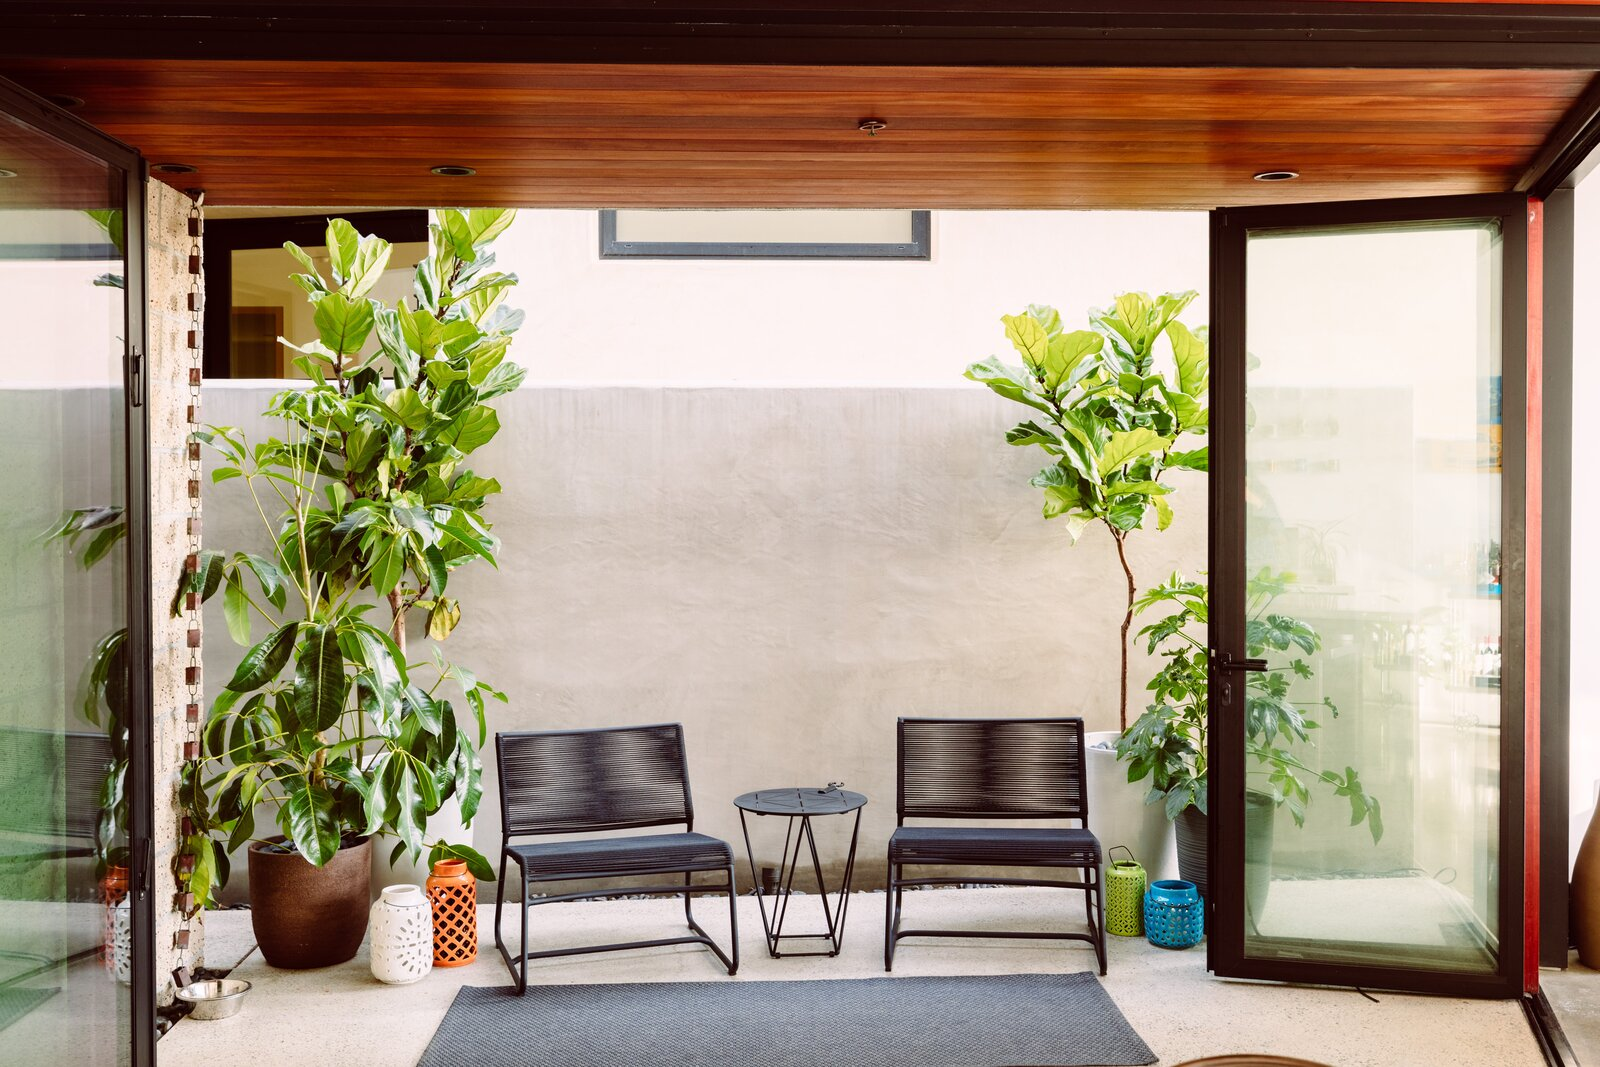 Photo 2 of 5972 in Outdoor Photos from This Gold Medalist Racer's Home  Takes Garage Design to the Next Level - Dwell